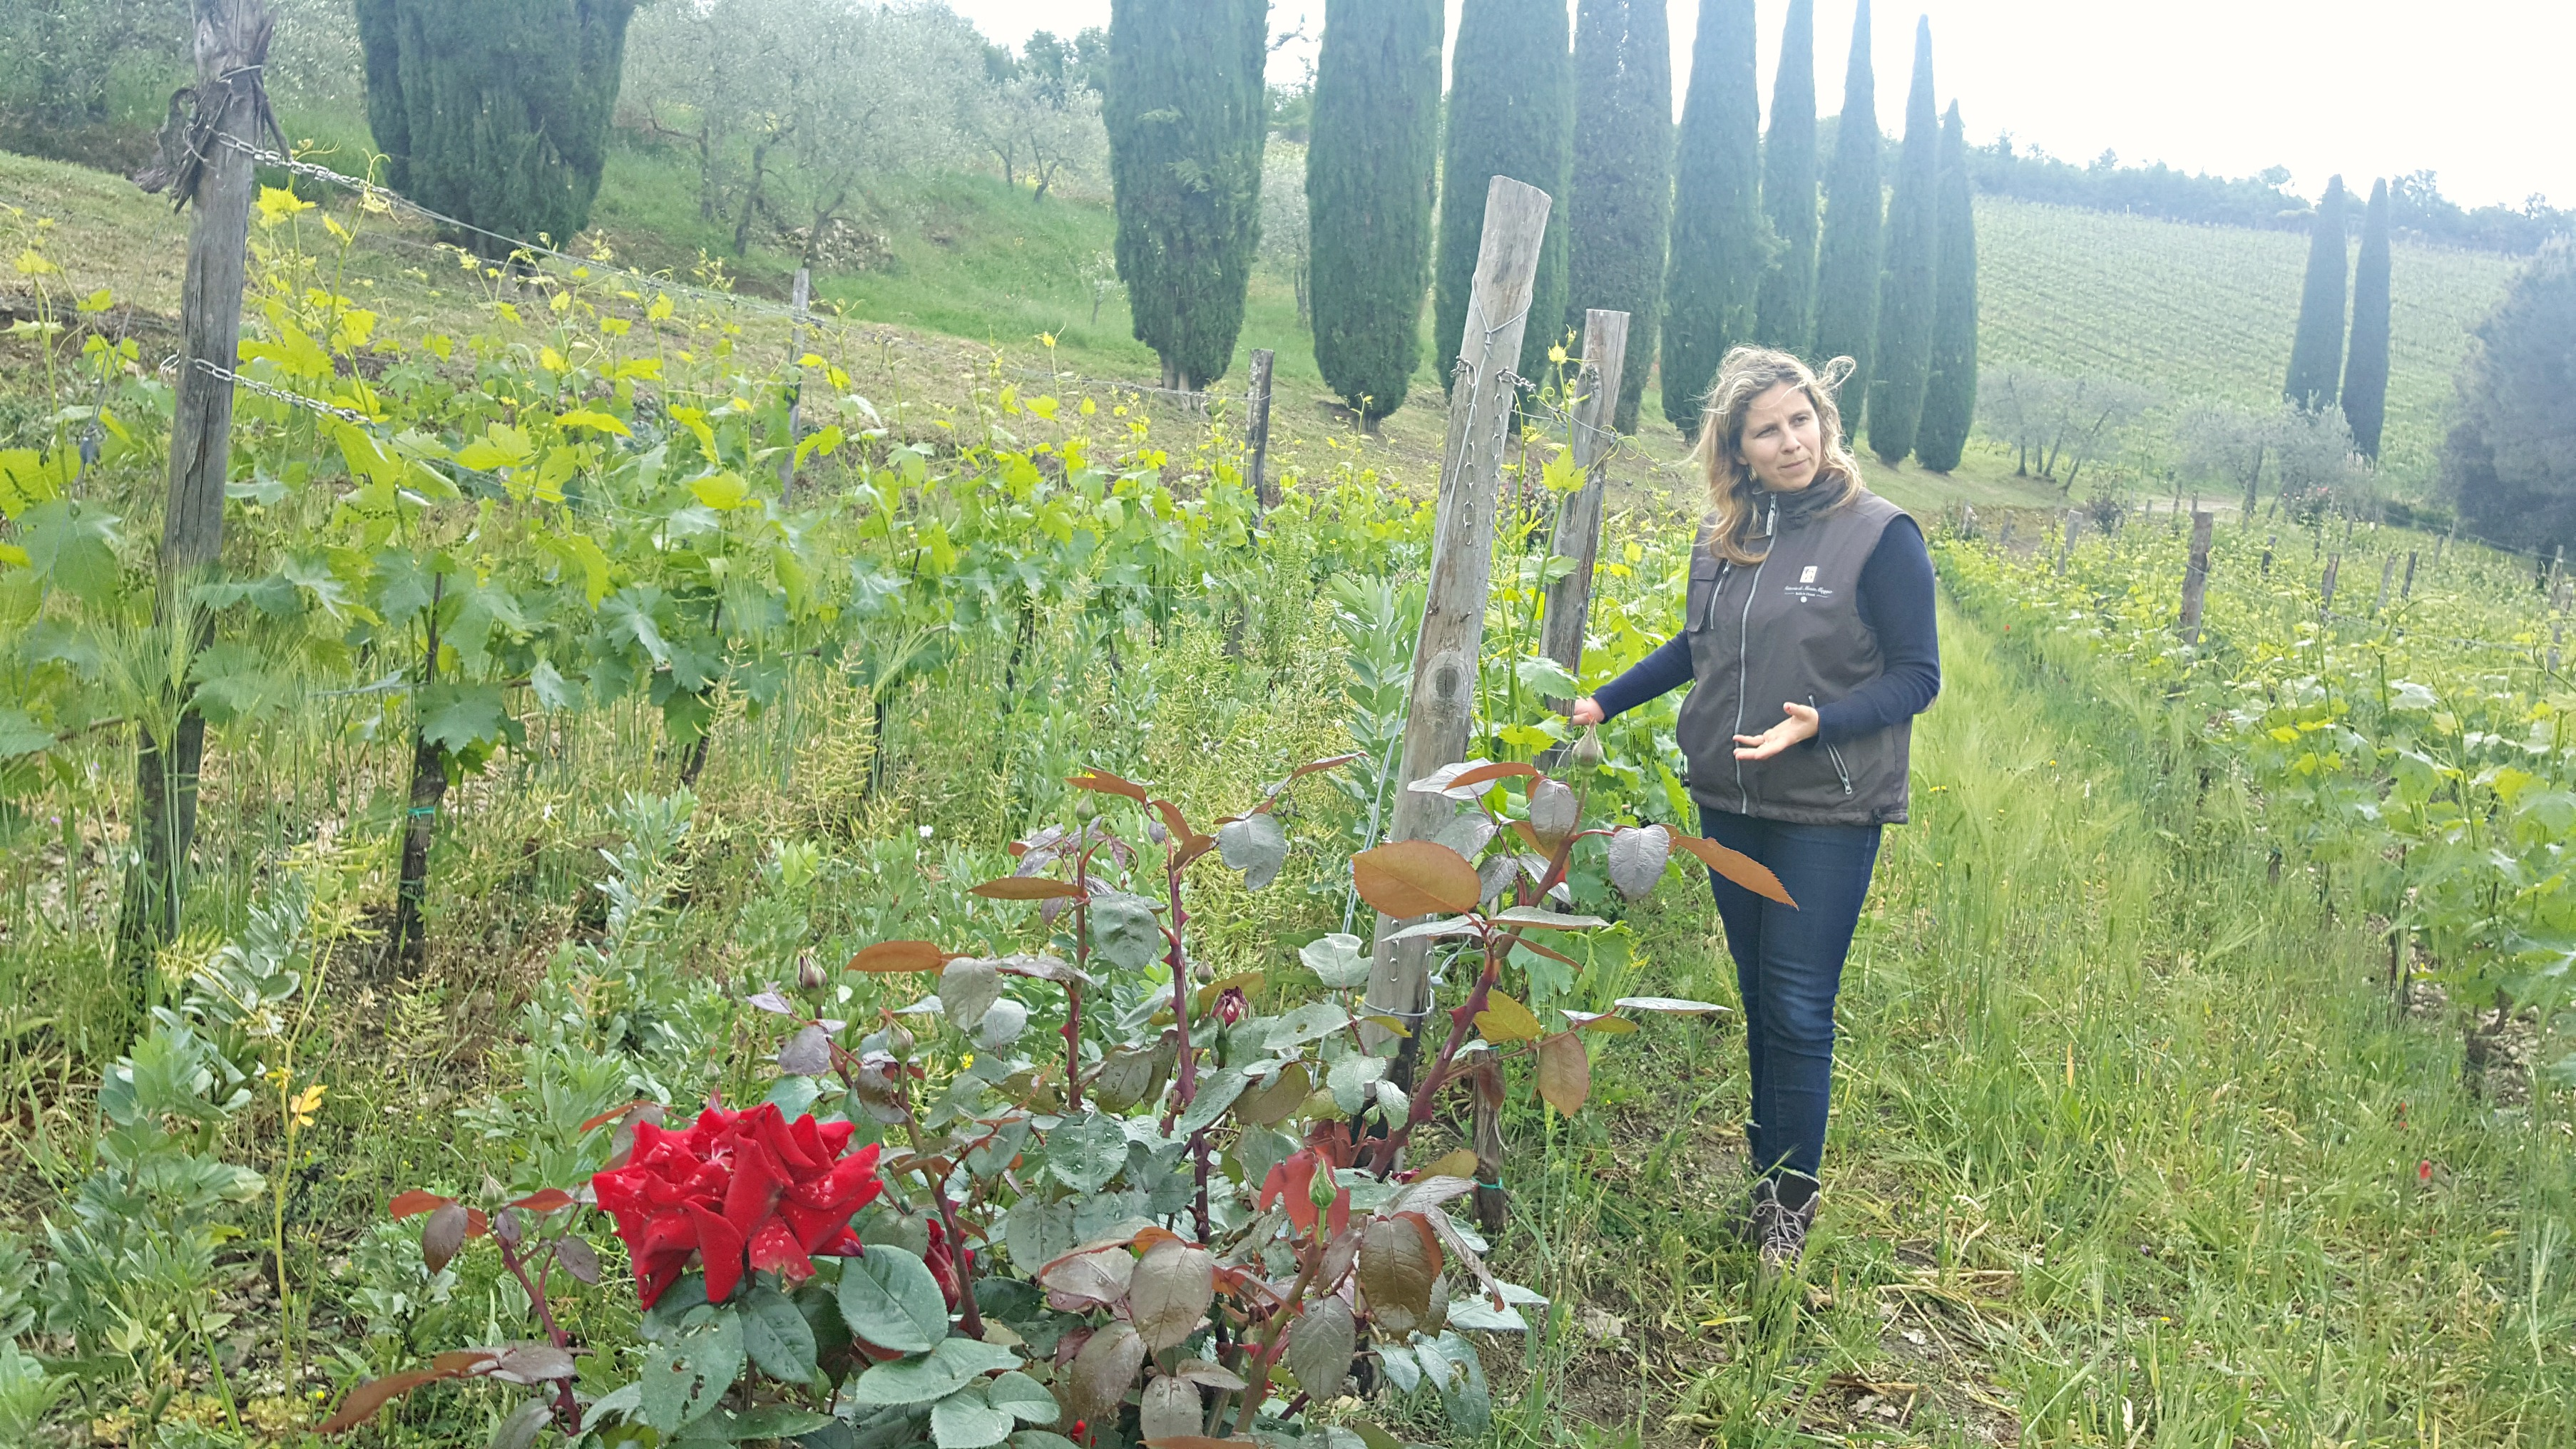 Organic Farming at Montemaggio